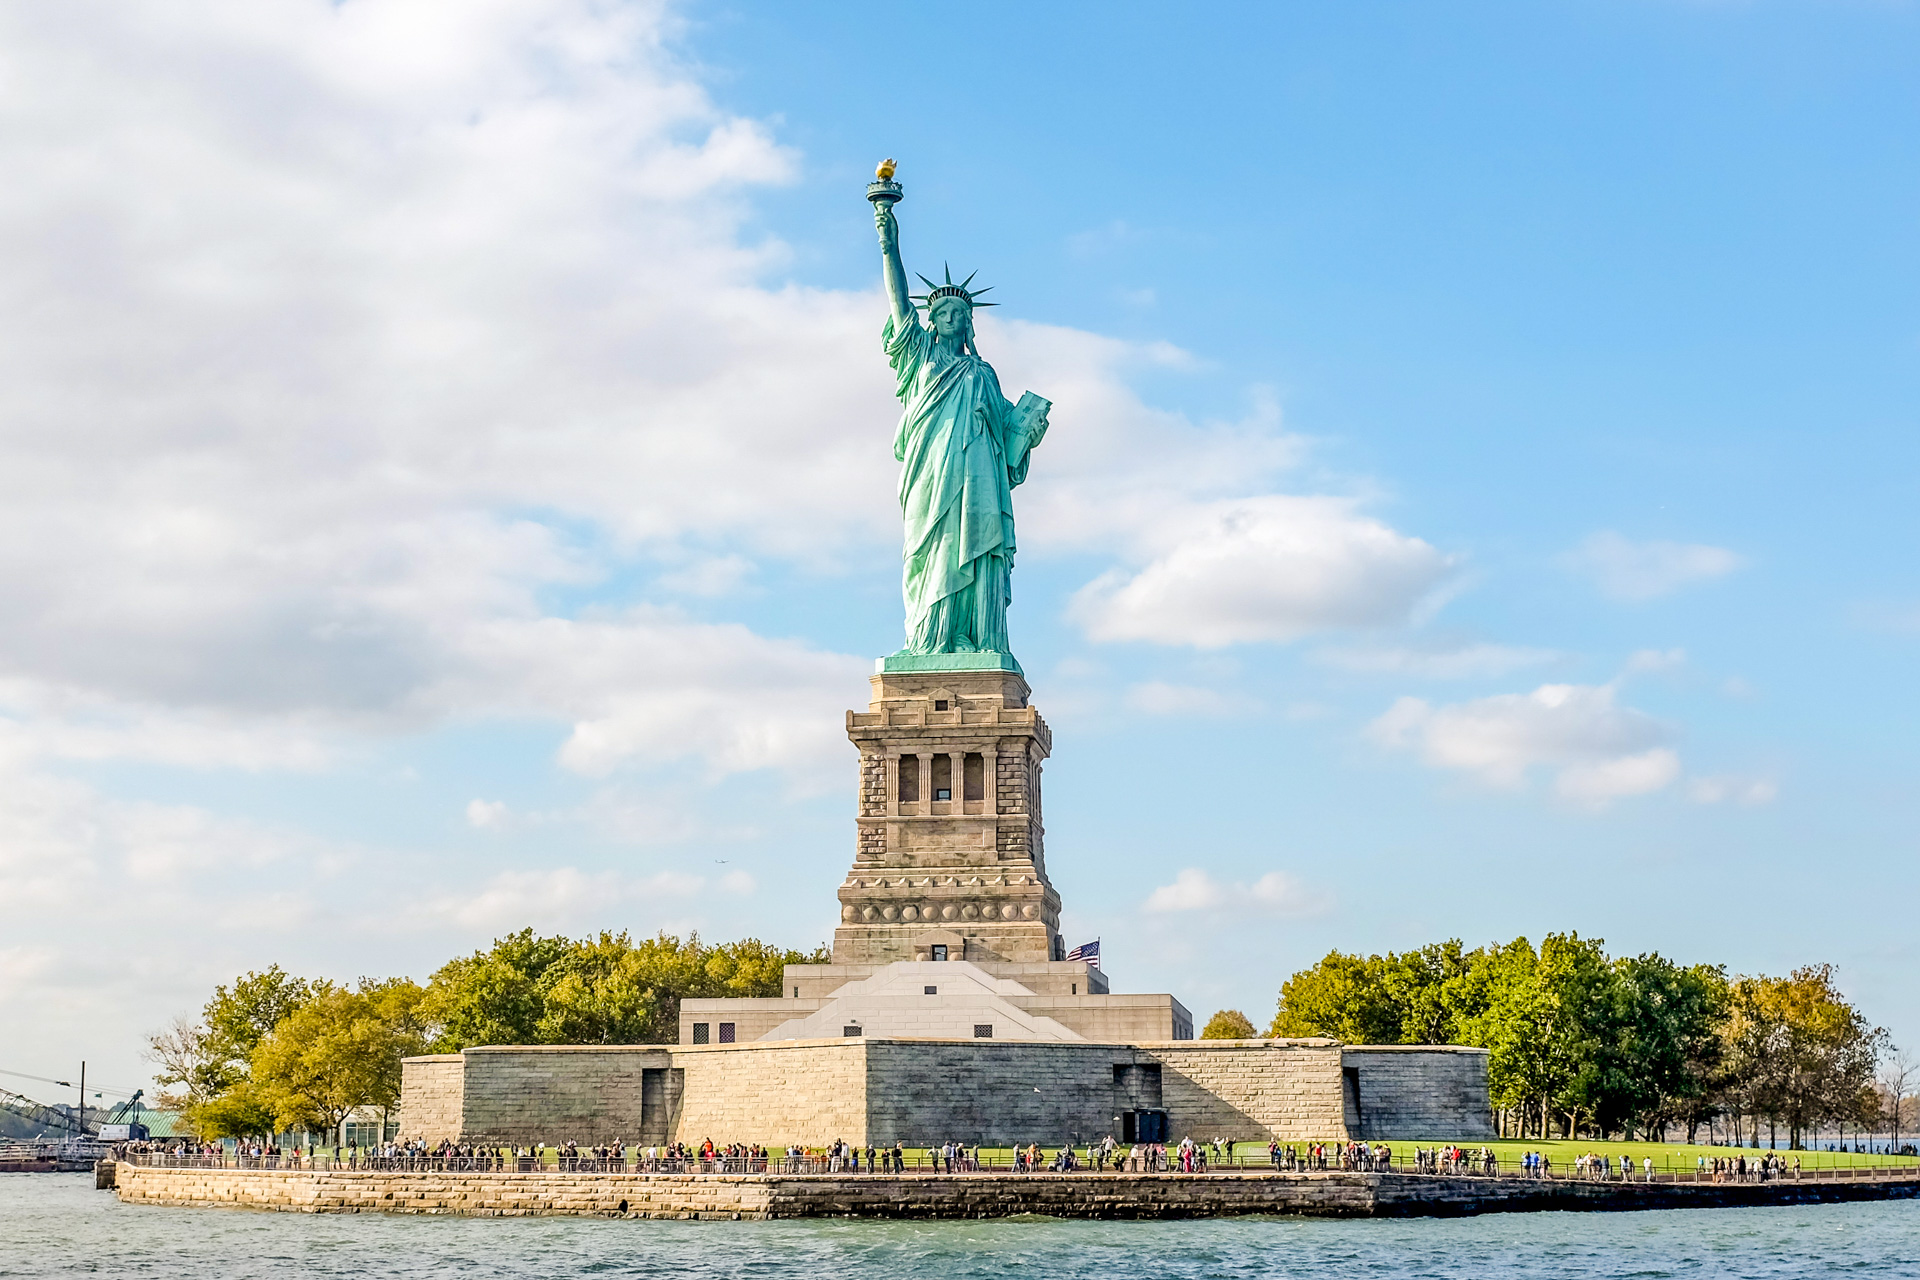 Statue of Liberty; Courtesy of Sanchai Kumar/Shutterstock.com